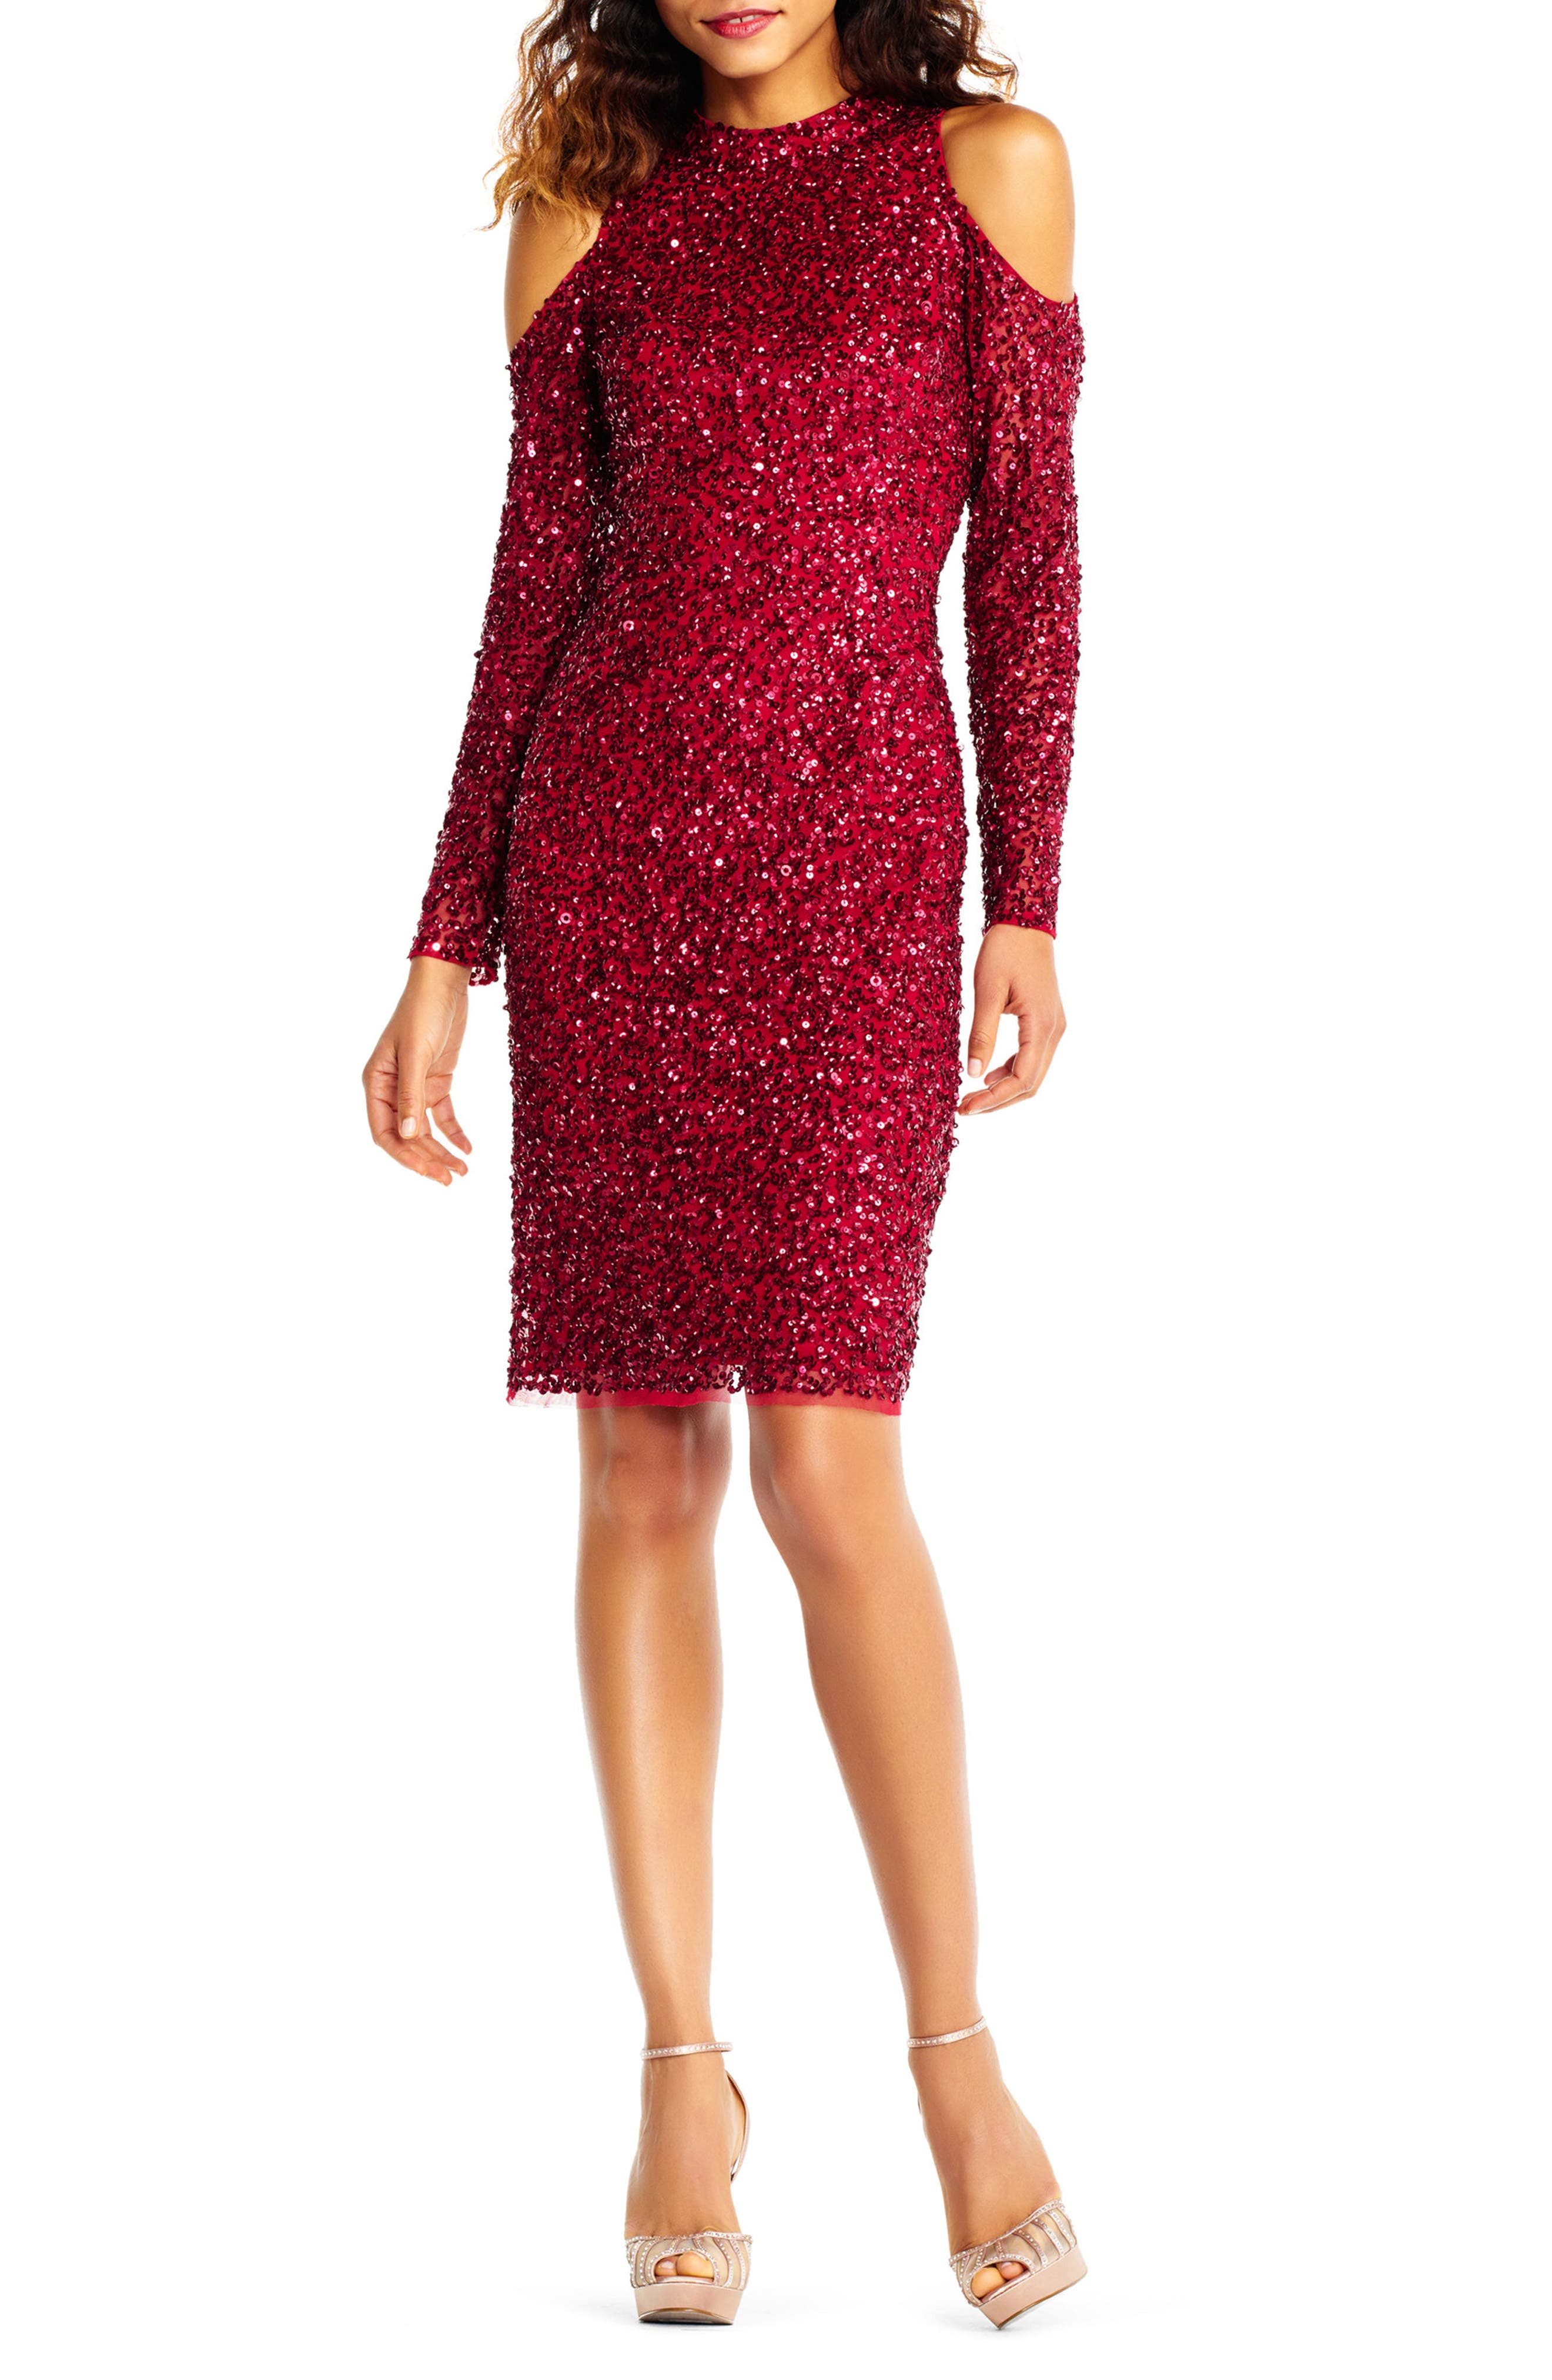 Alternate Image 1 Selected - Adrianna Papell Beaded Cold Shoulder Sheath Dress